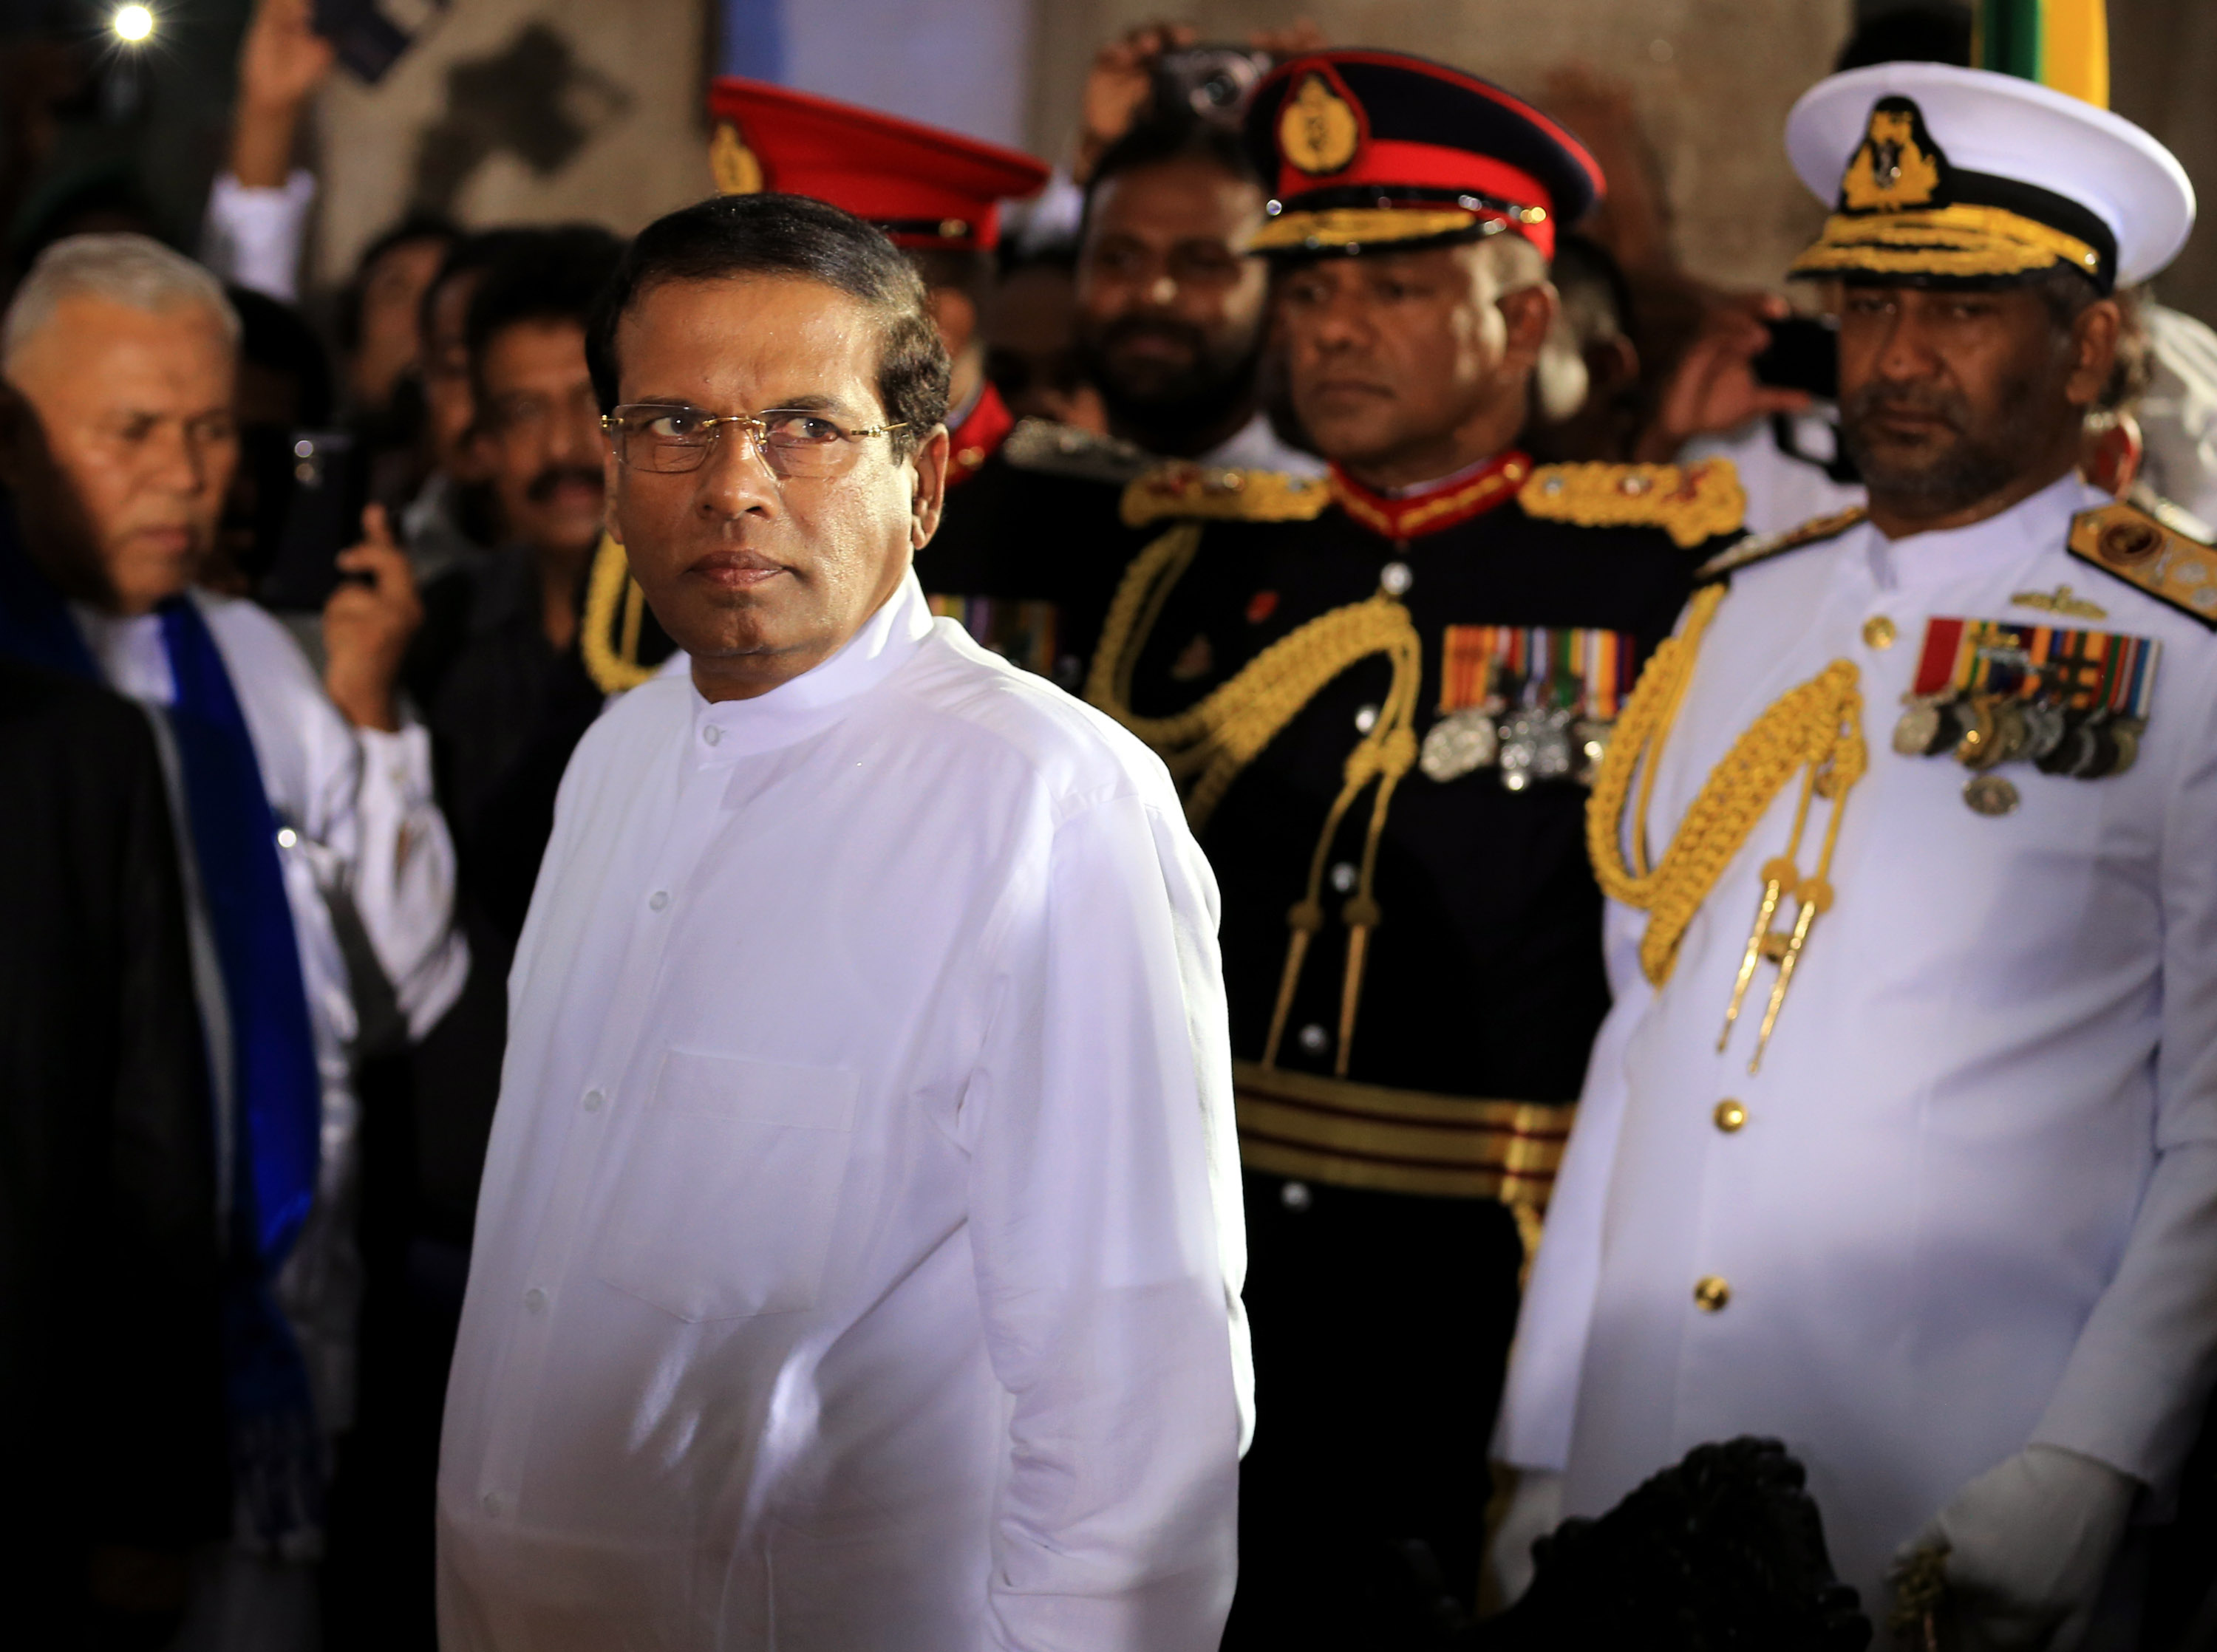 Sri Lanka's newly elected president Maithripala Sirisena (C) prepares to take oath as he is sworn in at Independence Square in Colombo on January 9, 2015 in Colombo, Sri Lanka.